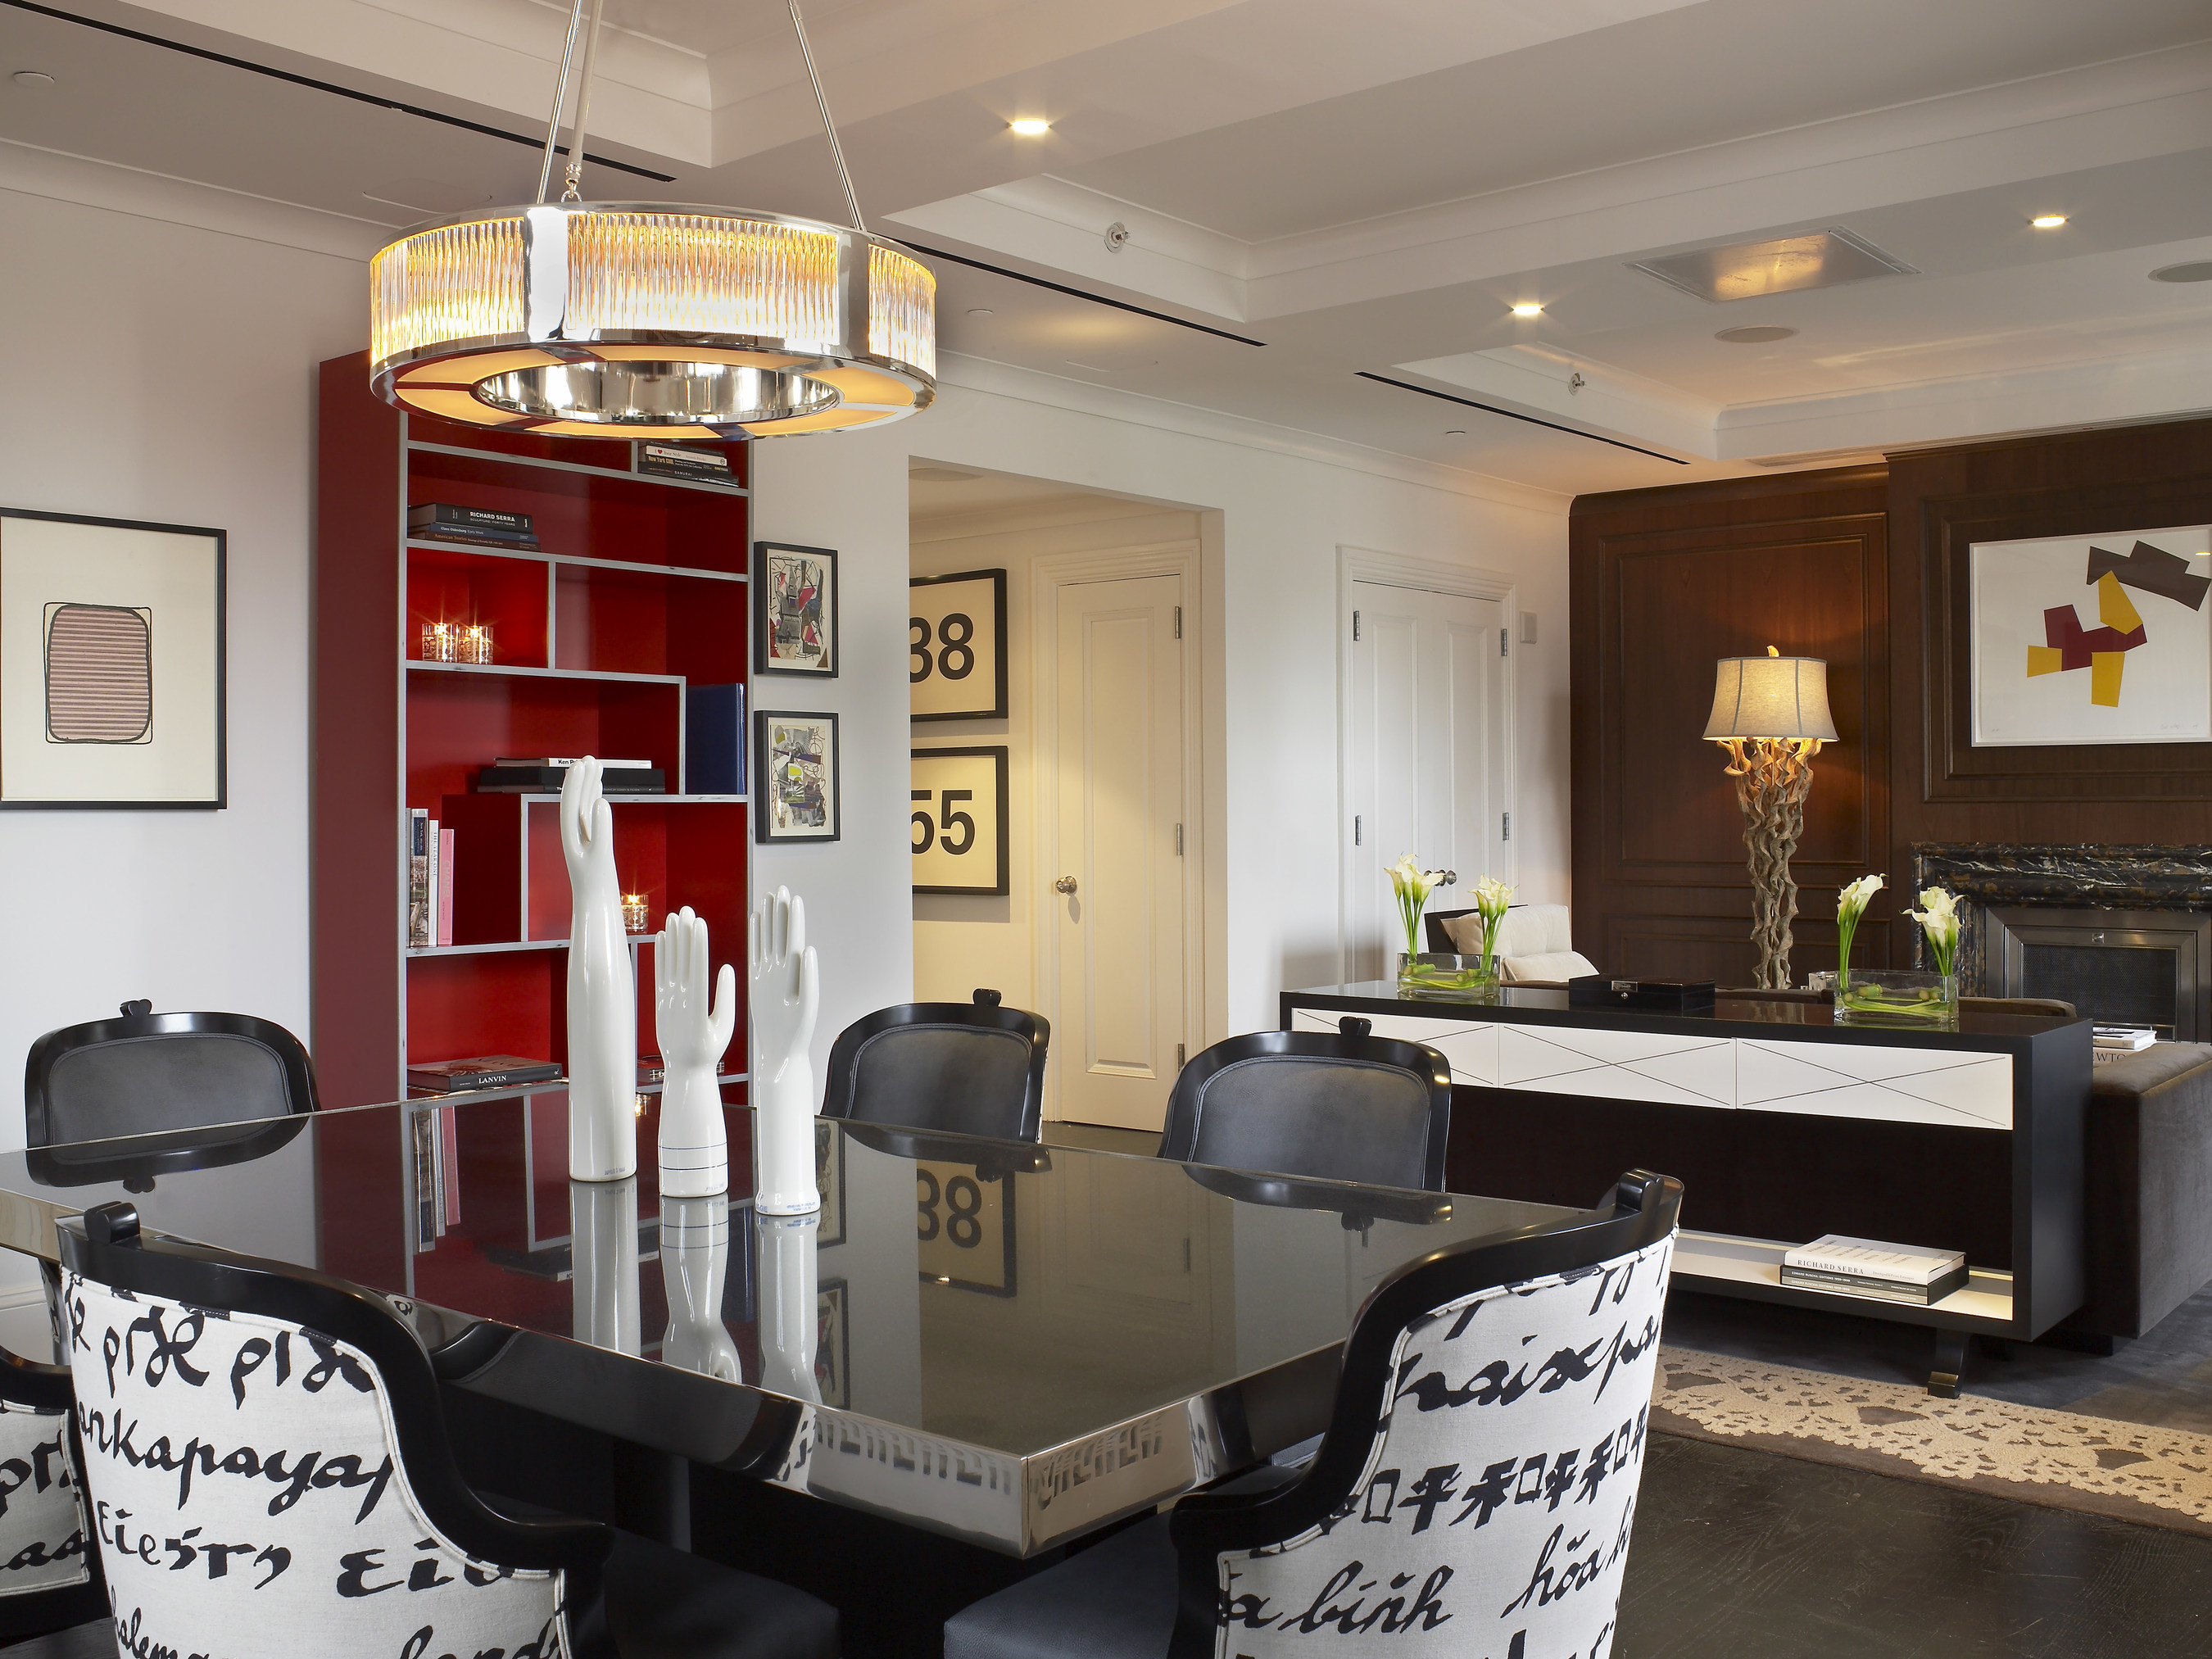 The Surrey's Penthouse Suite features a modern art collection and private rooftop access.